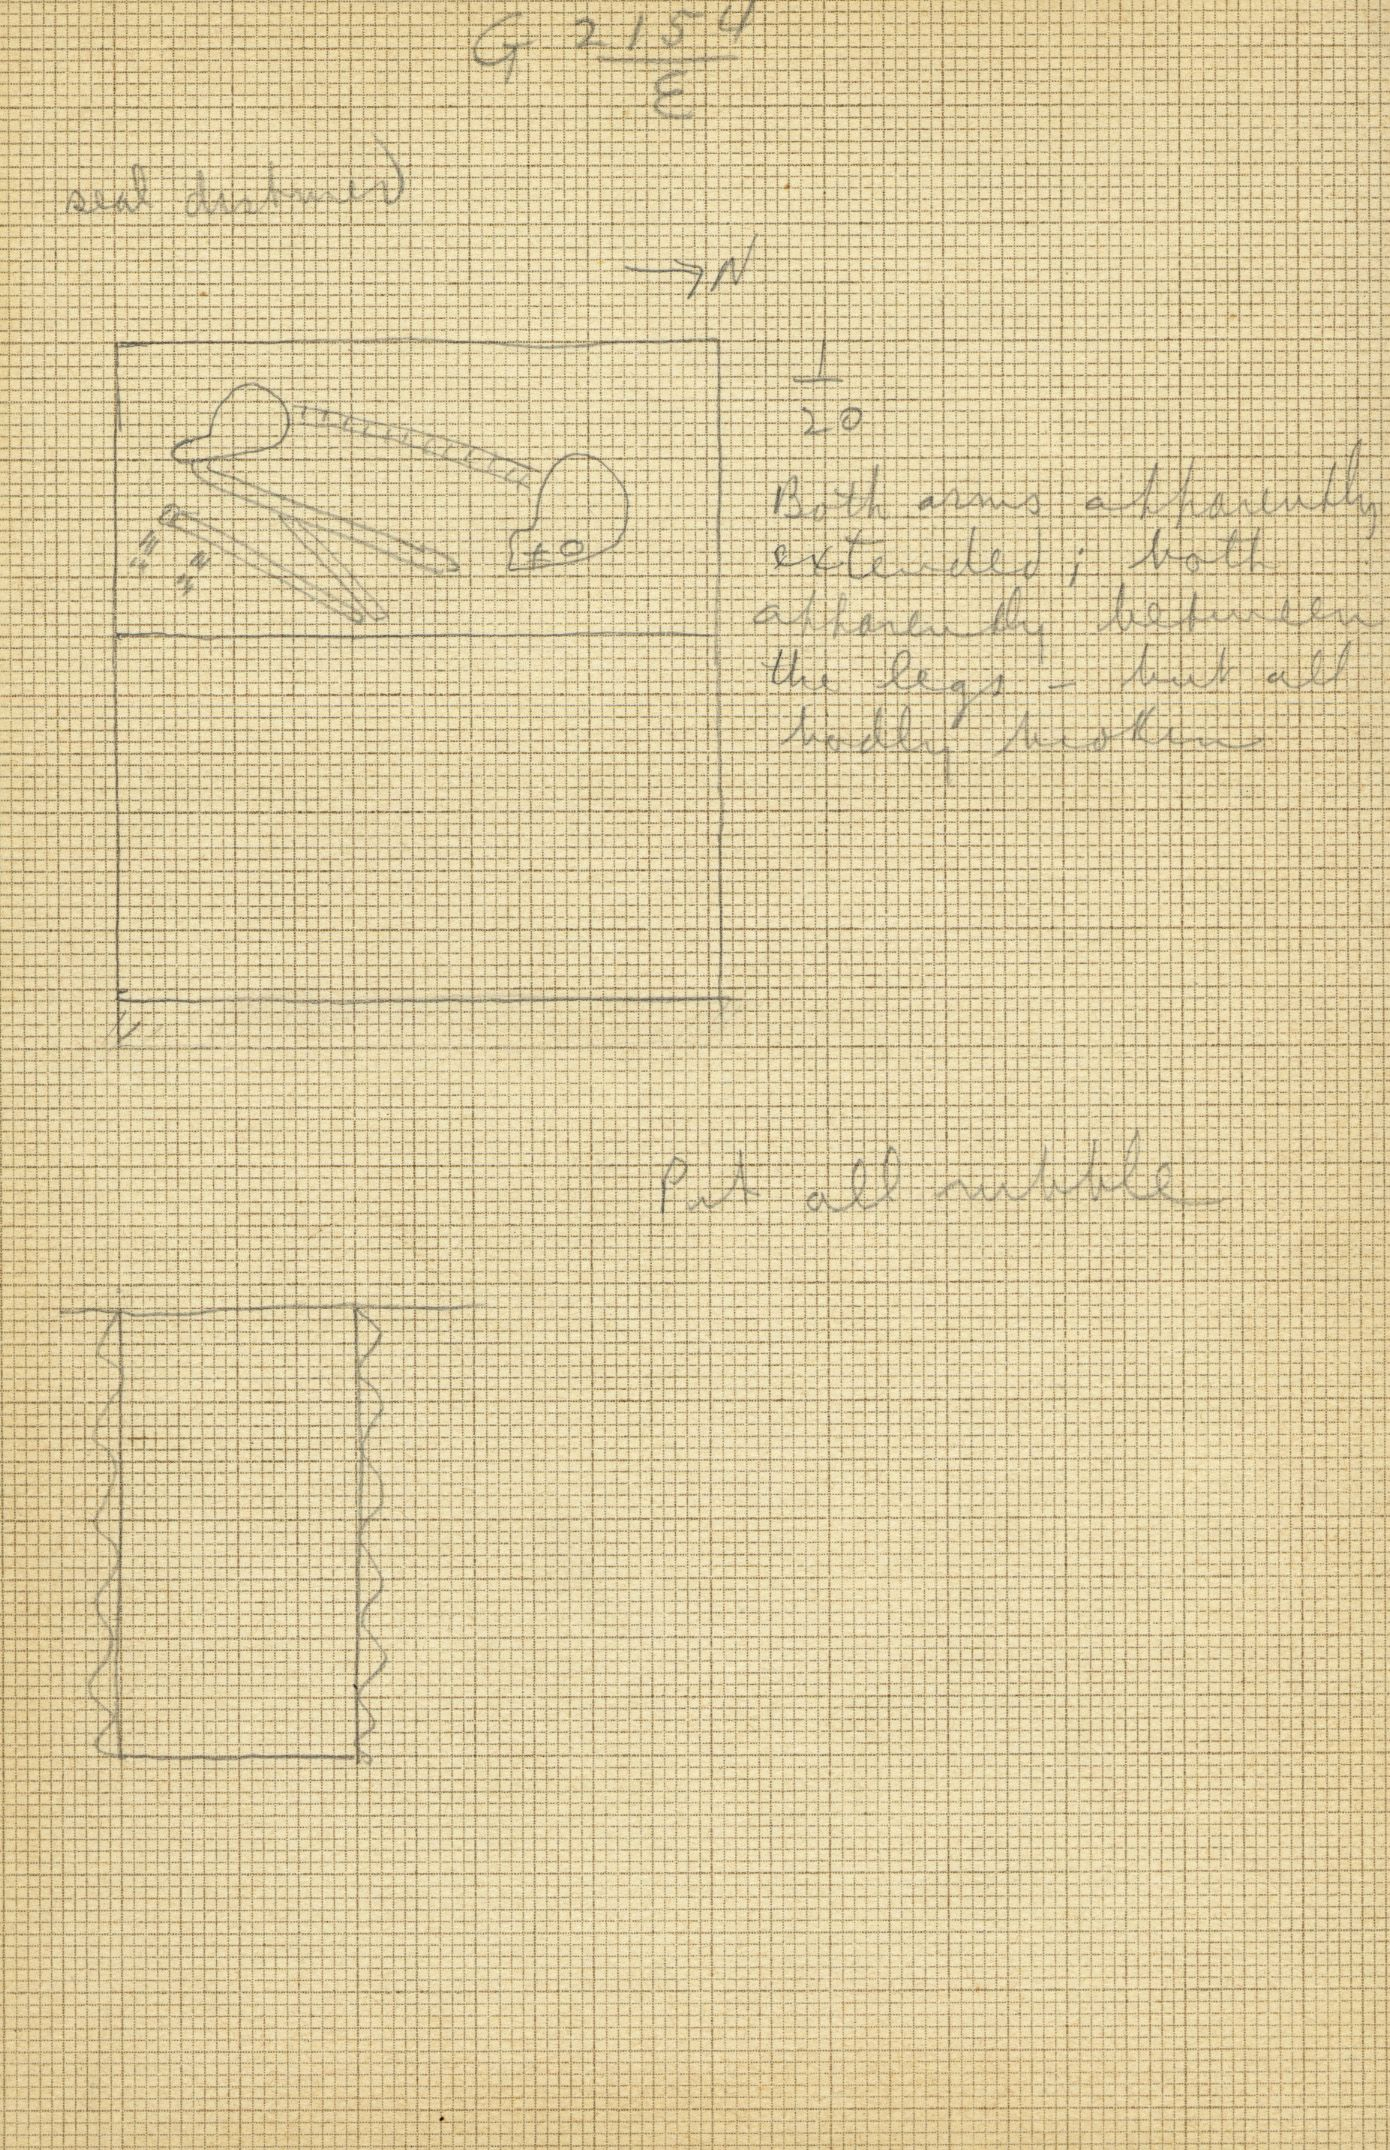 Maps and plans: G 2154, Shaft E